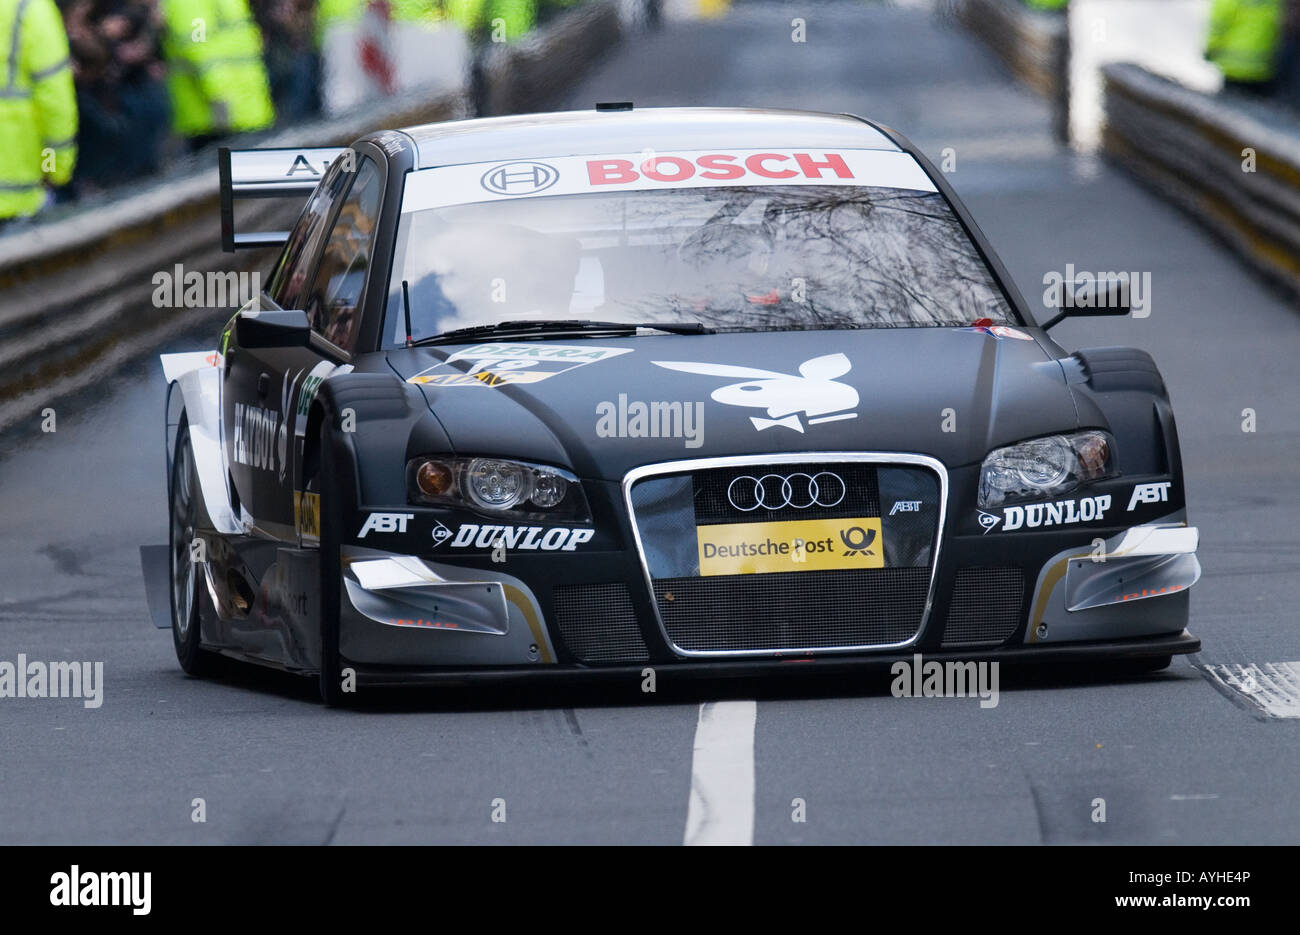 Dtm Presentation On The Streets Of Duesseldorf Germany Markus Stock